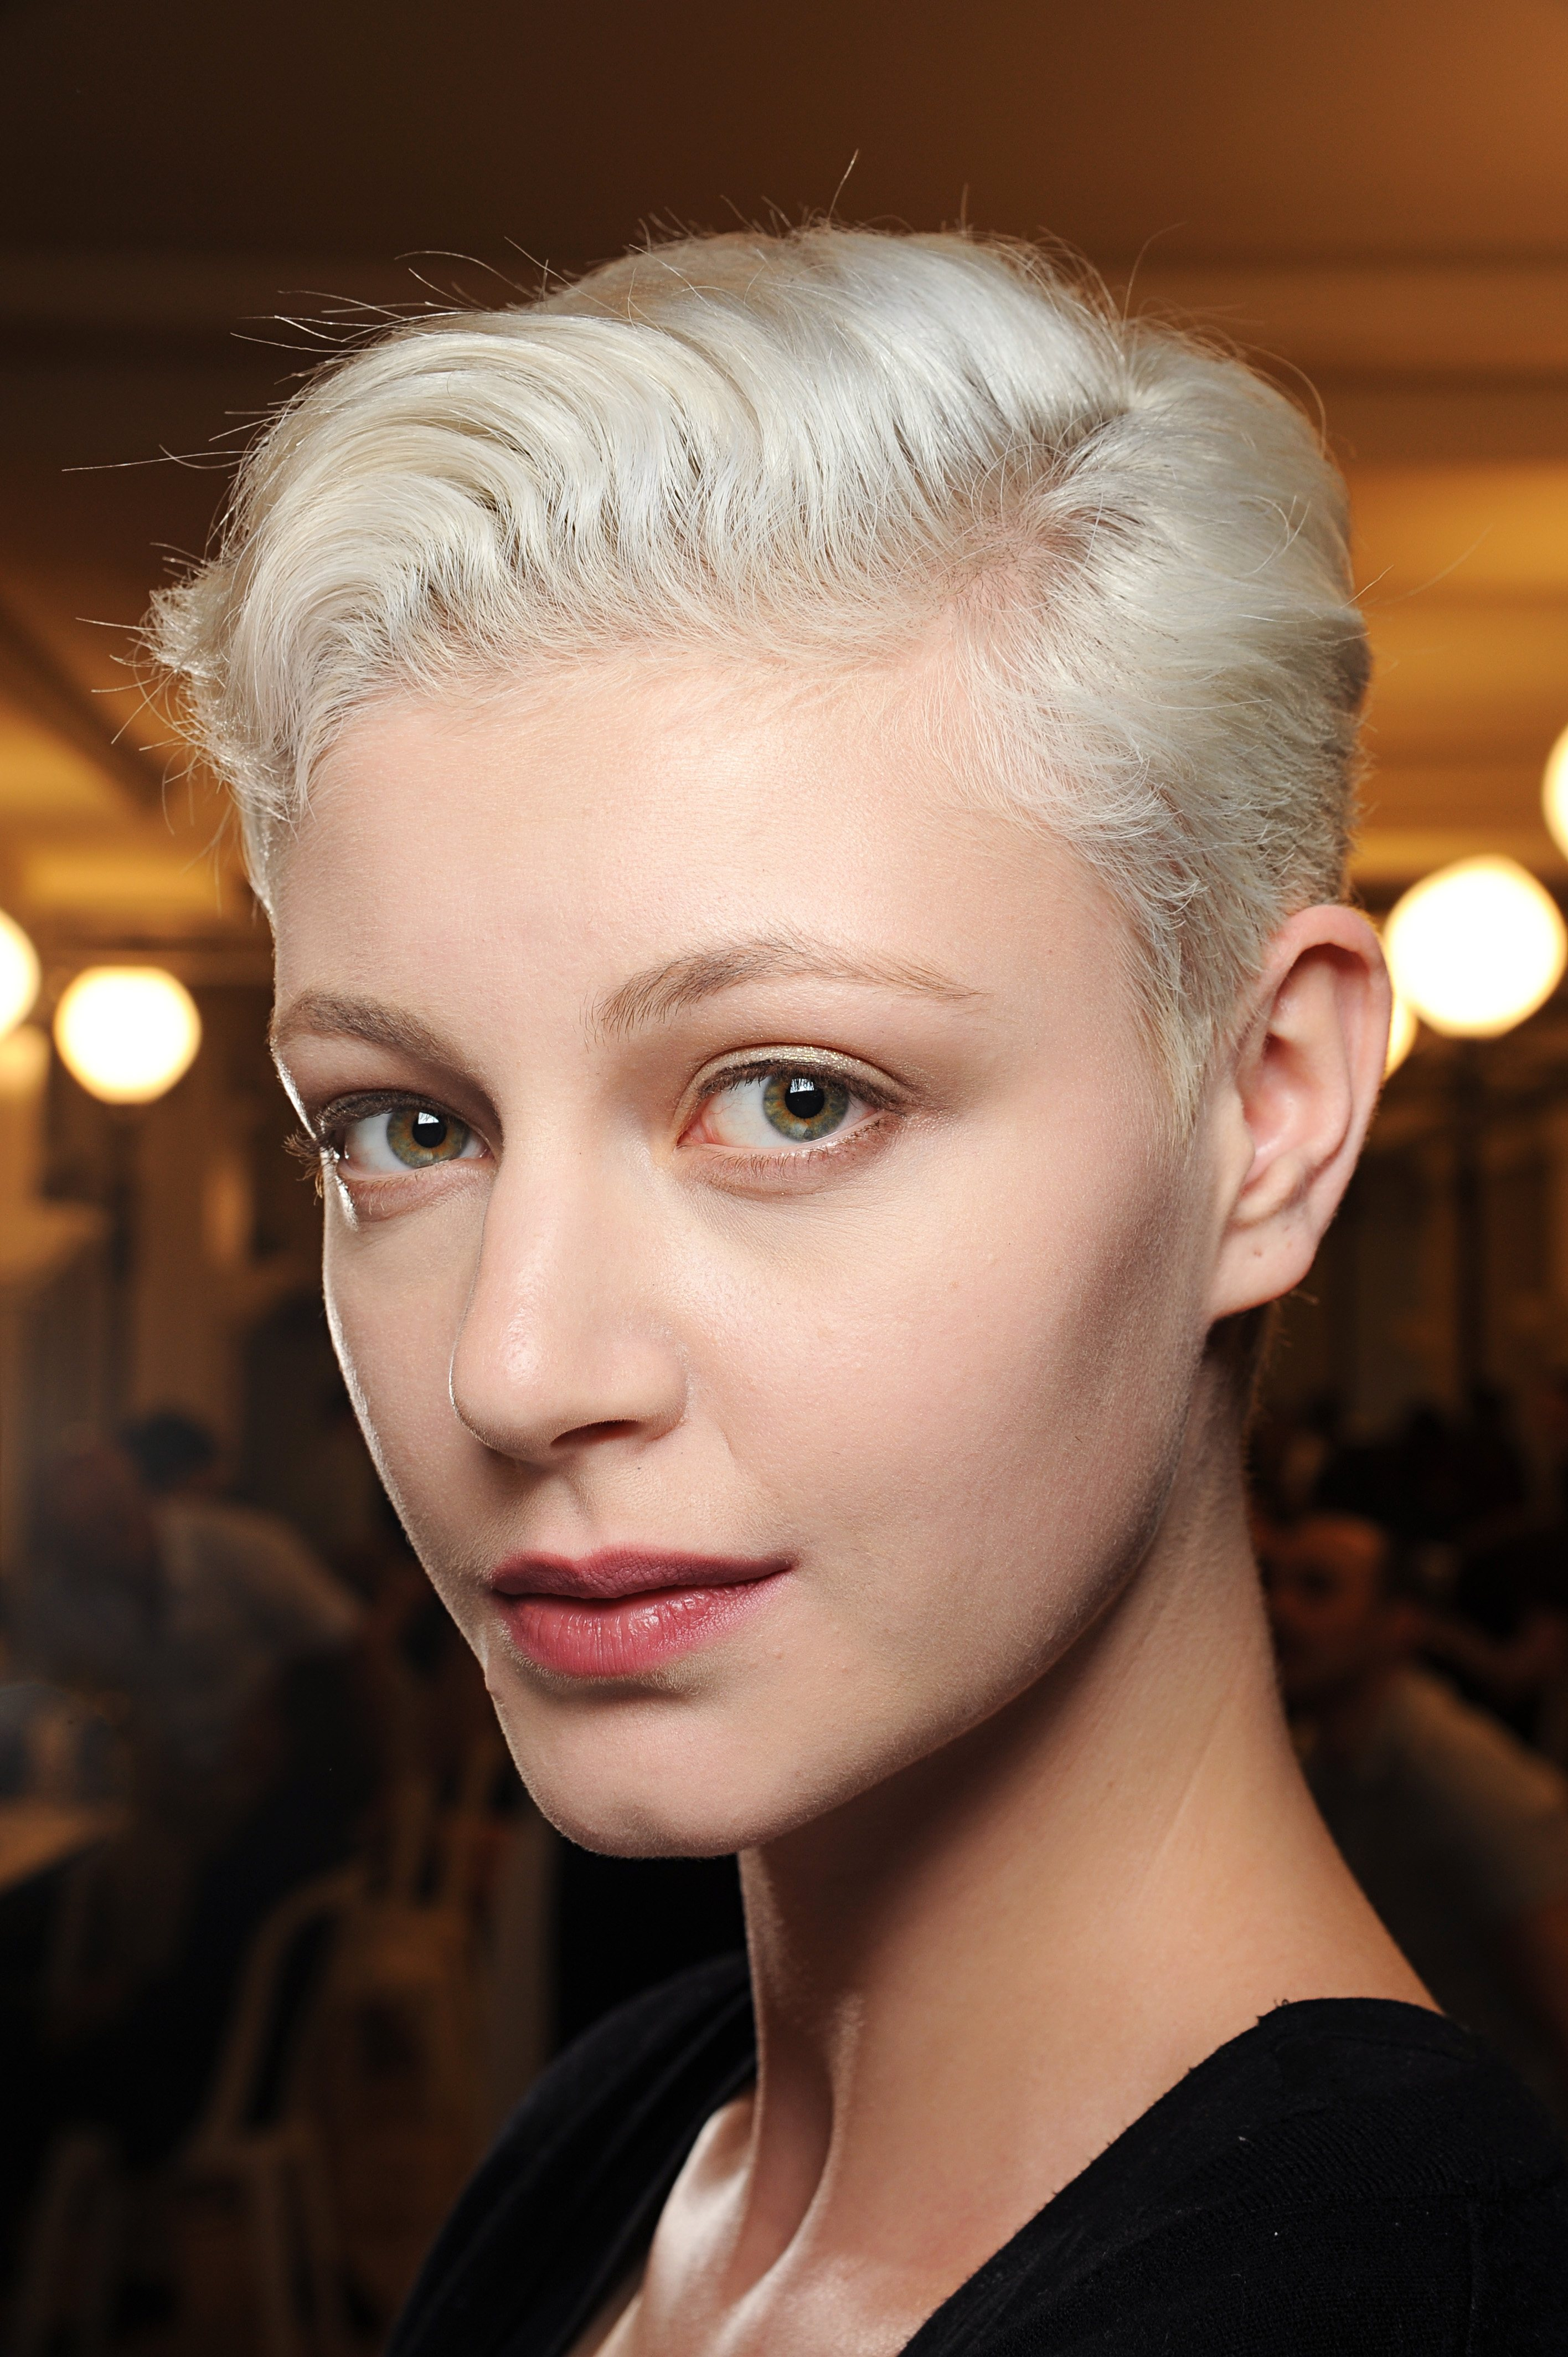 21 incredible platinum blonde hairstyles you're sure to love